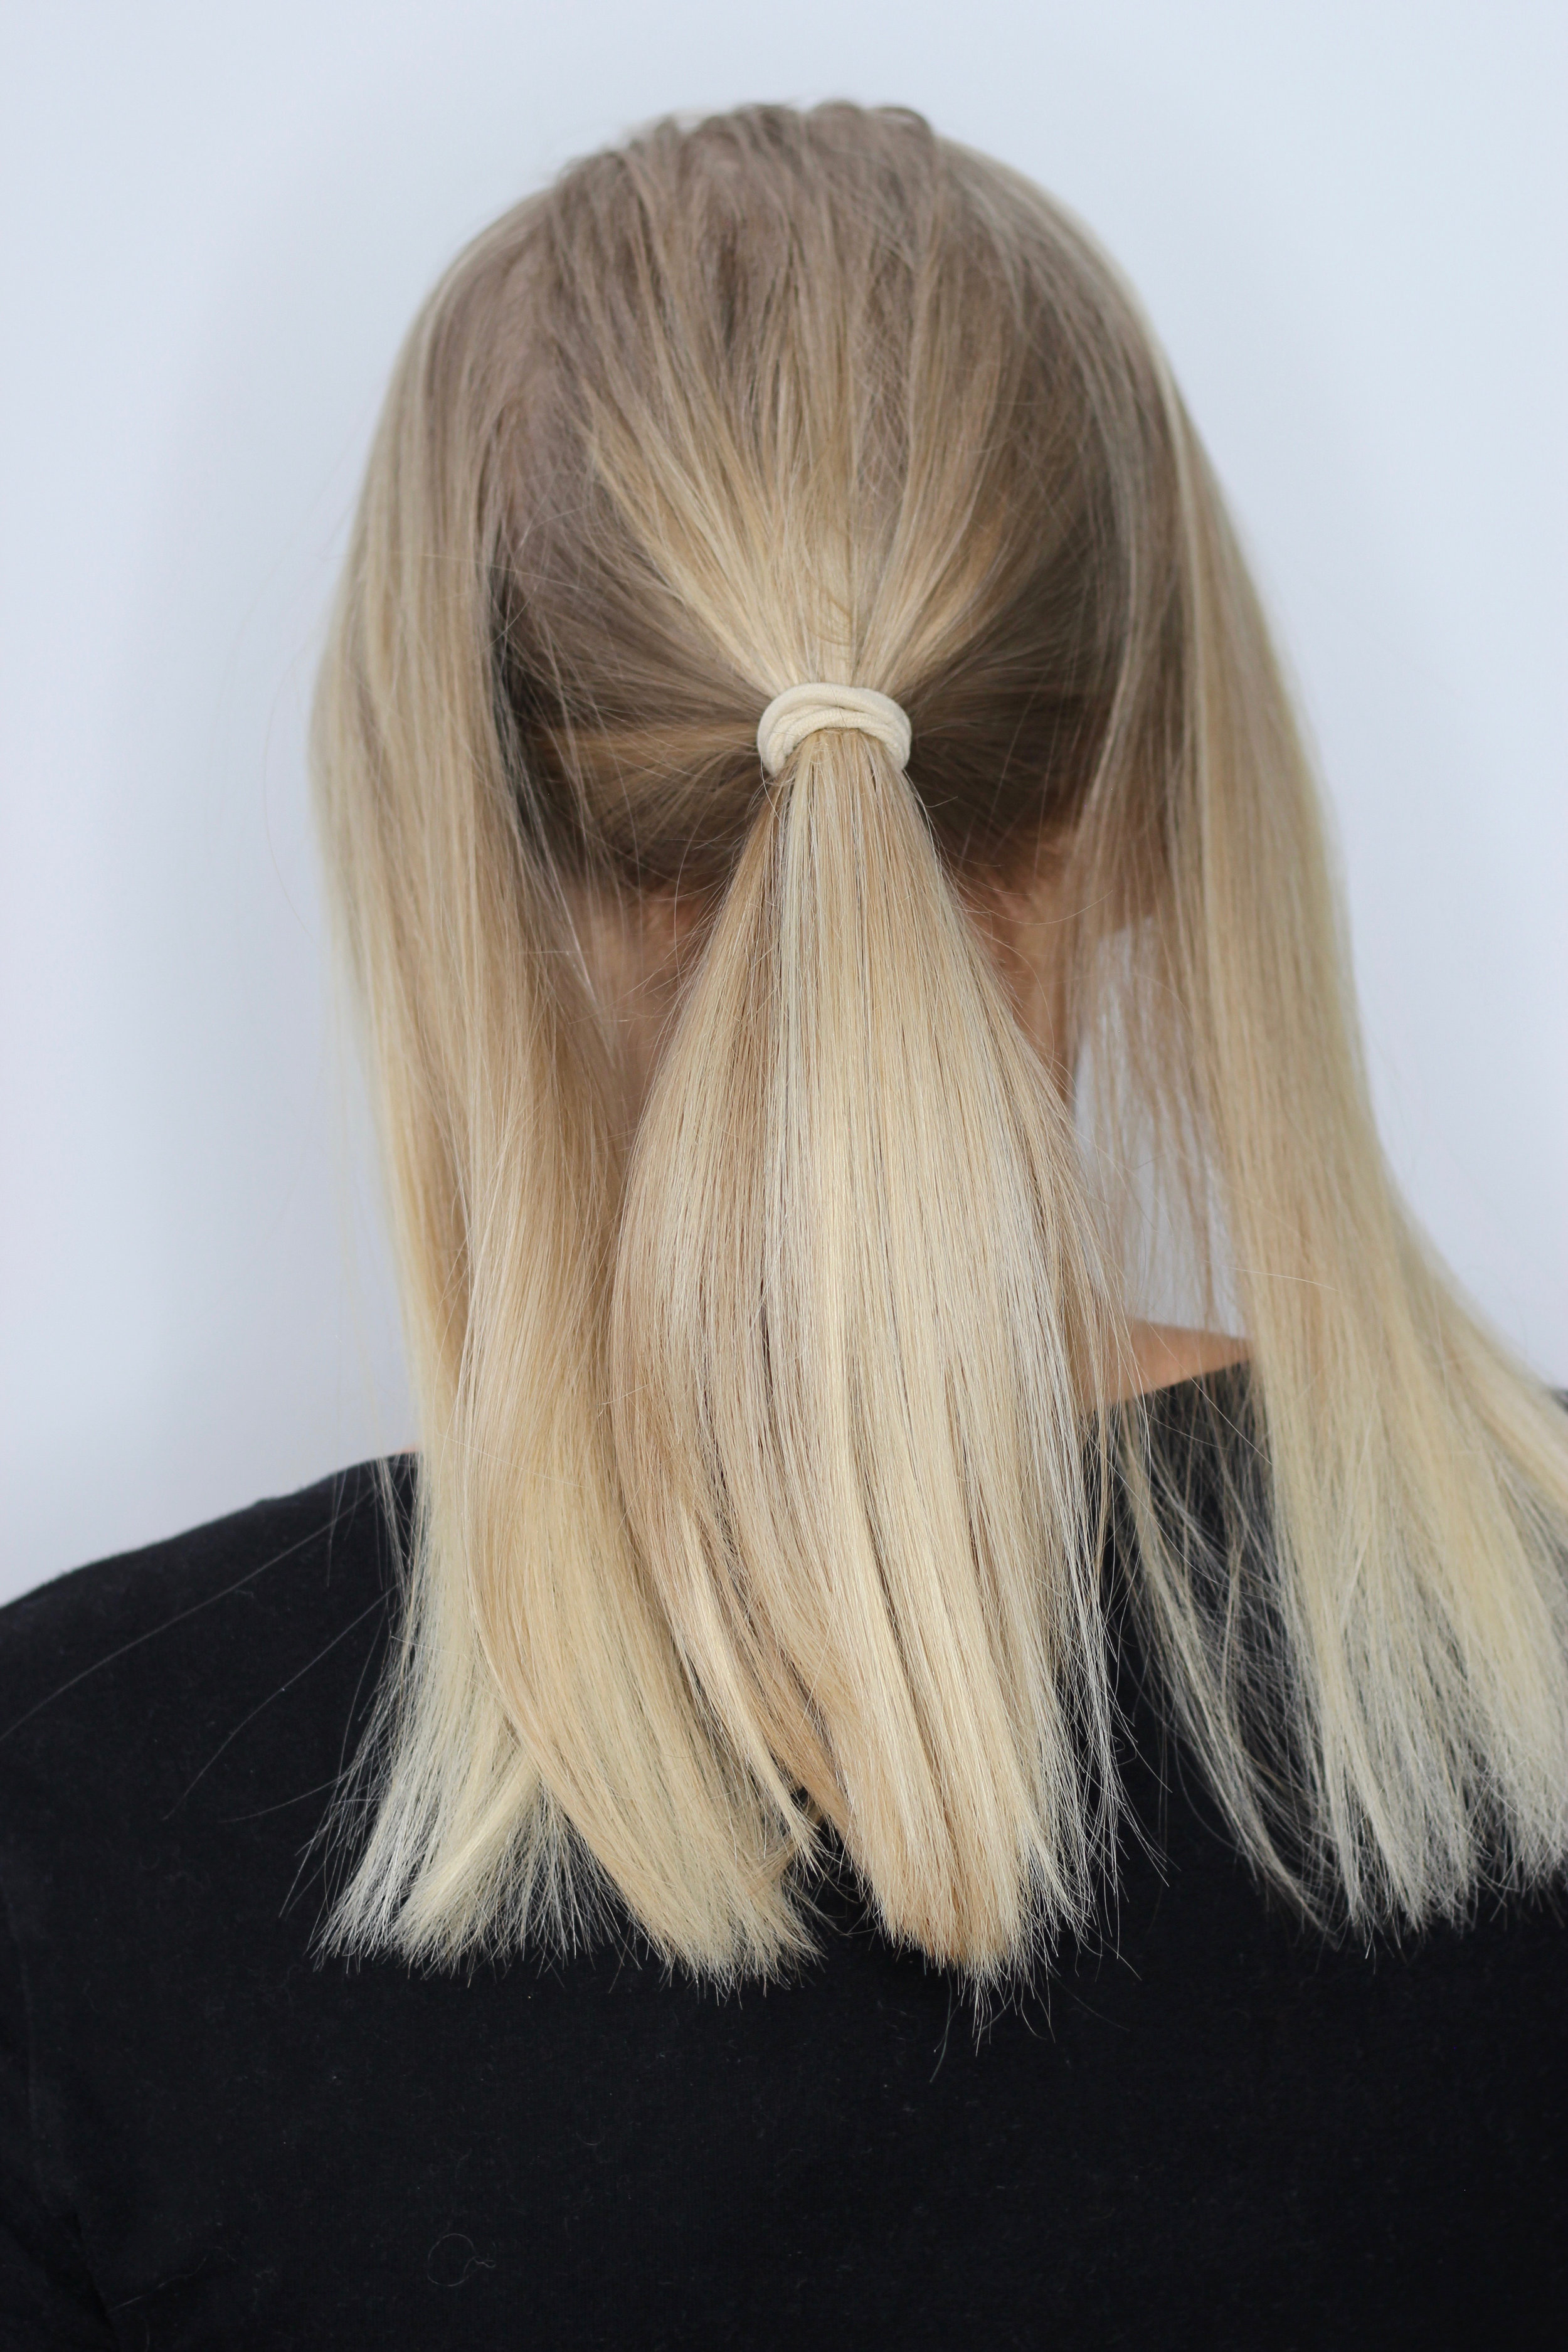 STEP 1 - Split your hair into 3 sections, with the middle section being the biggest one. Tie the middle section up into a low(ish) ponytail.